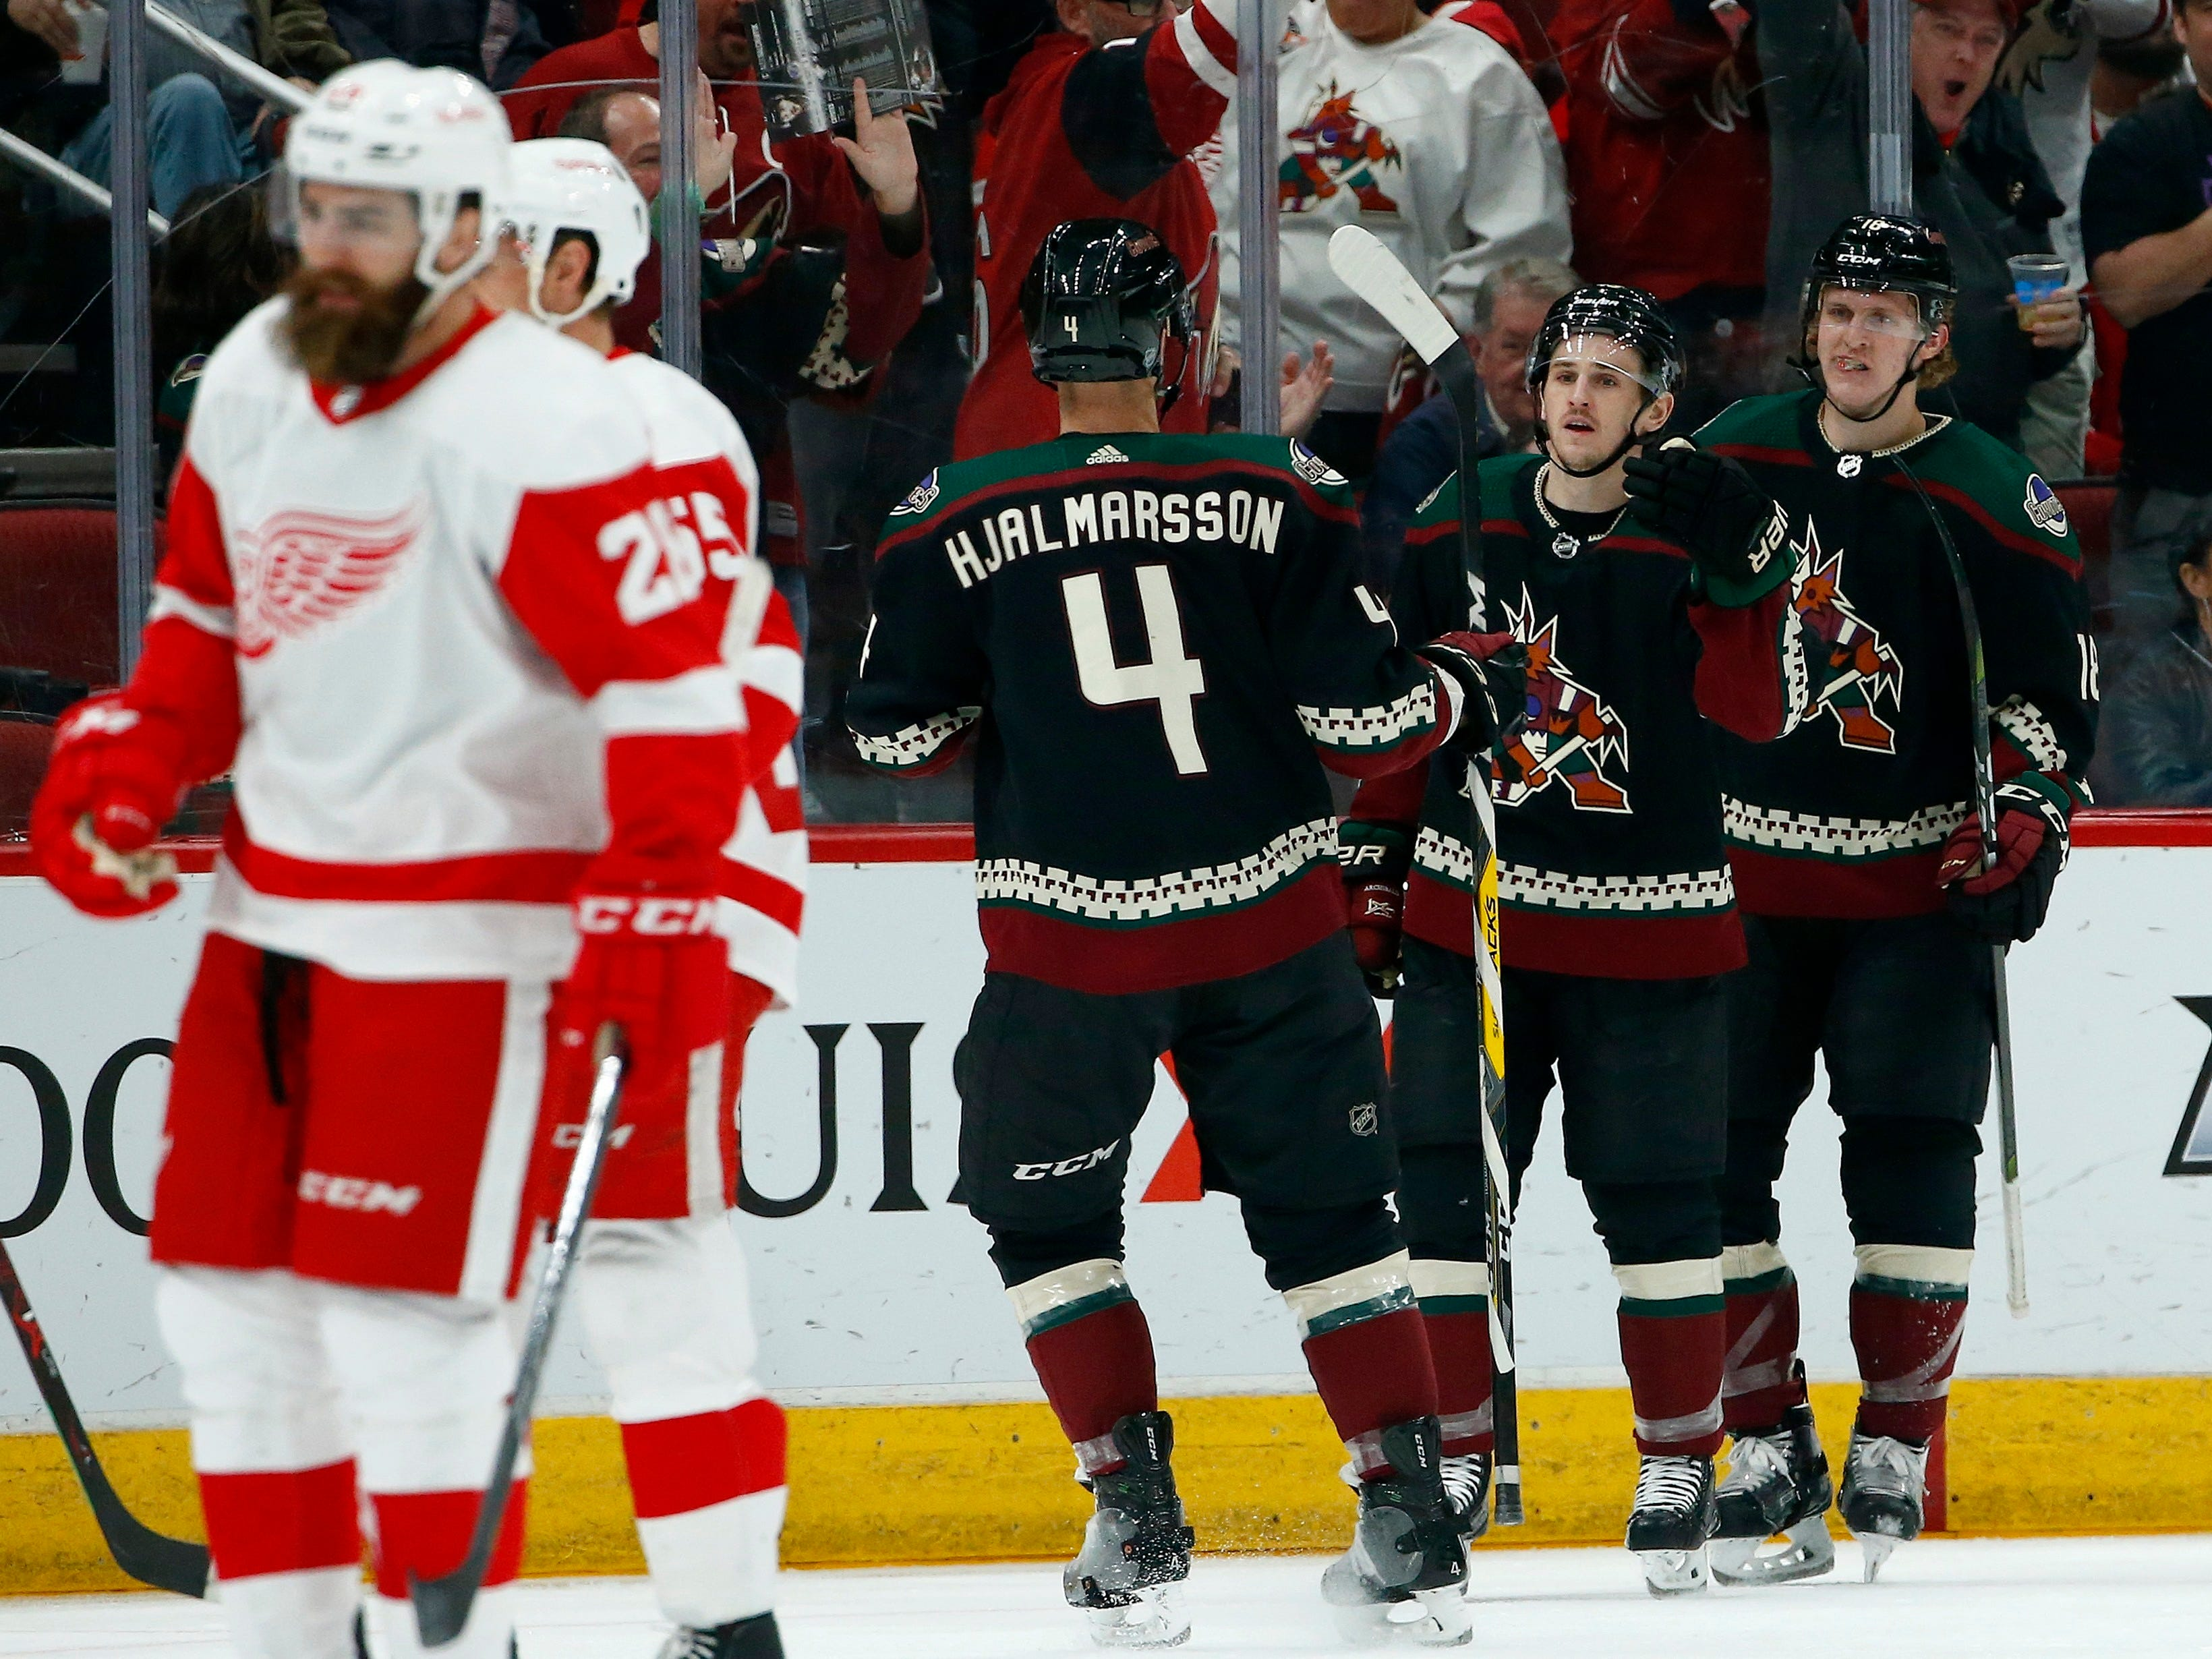 Arizona Coyotes right wing Josh Archibald, second from right, celebrates his goal with Coyotes center Christian Dvorak (18) and defenseman Niklas Hjalmarsson (4) as Detroit Red Wings right wing Luke Witkowski, left, and defenseman Niklas Kronwall, second from left, skate to the bench during the first period Saturday, March 2, 2019, in Glendale, Ariz. (AP Photo/Ross D. Franklin)